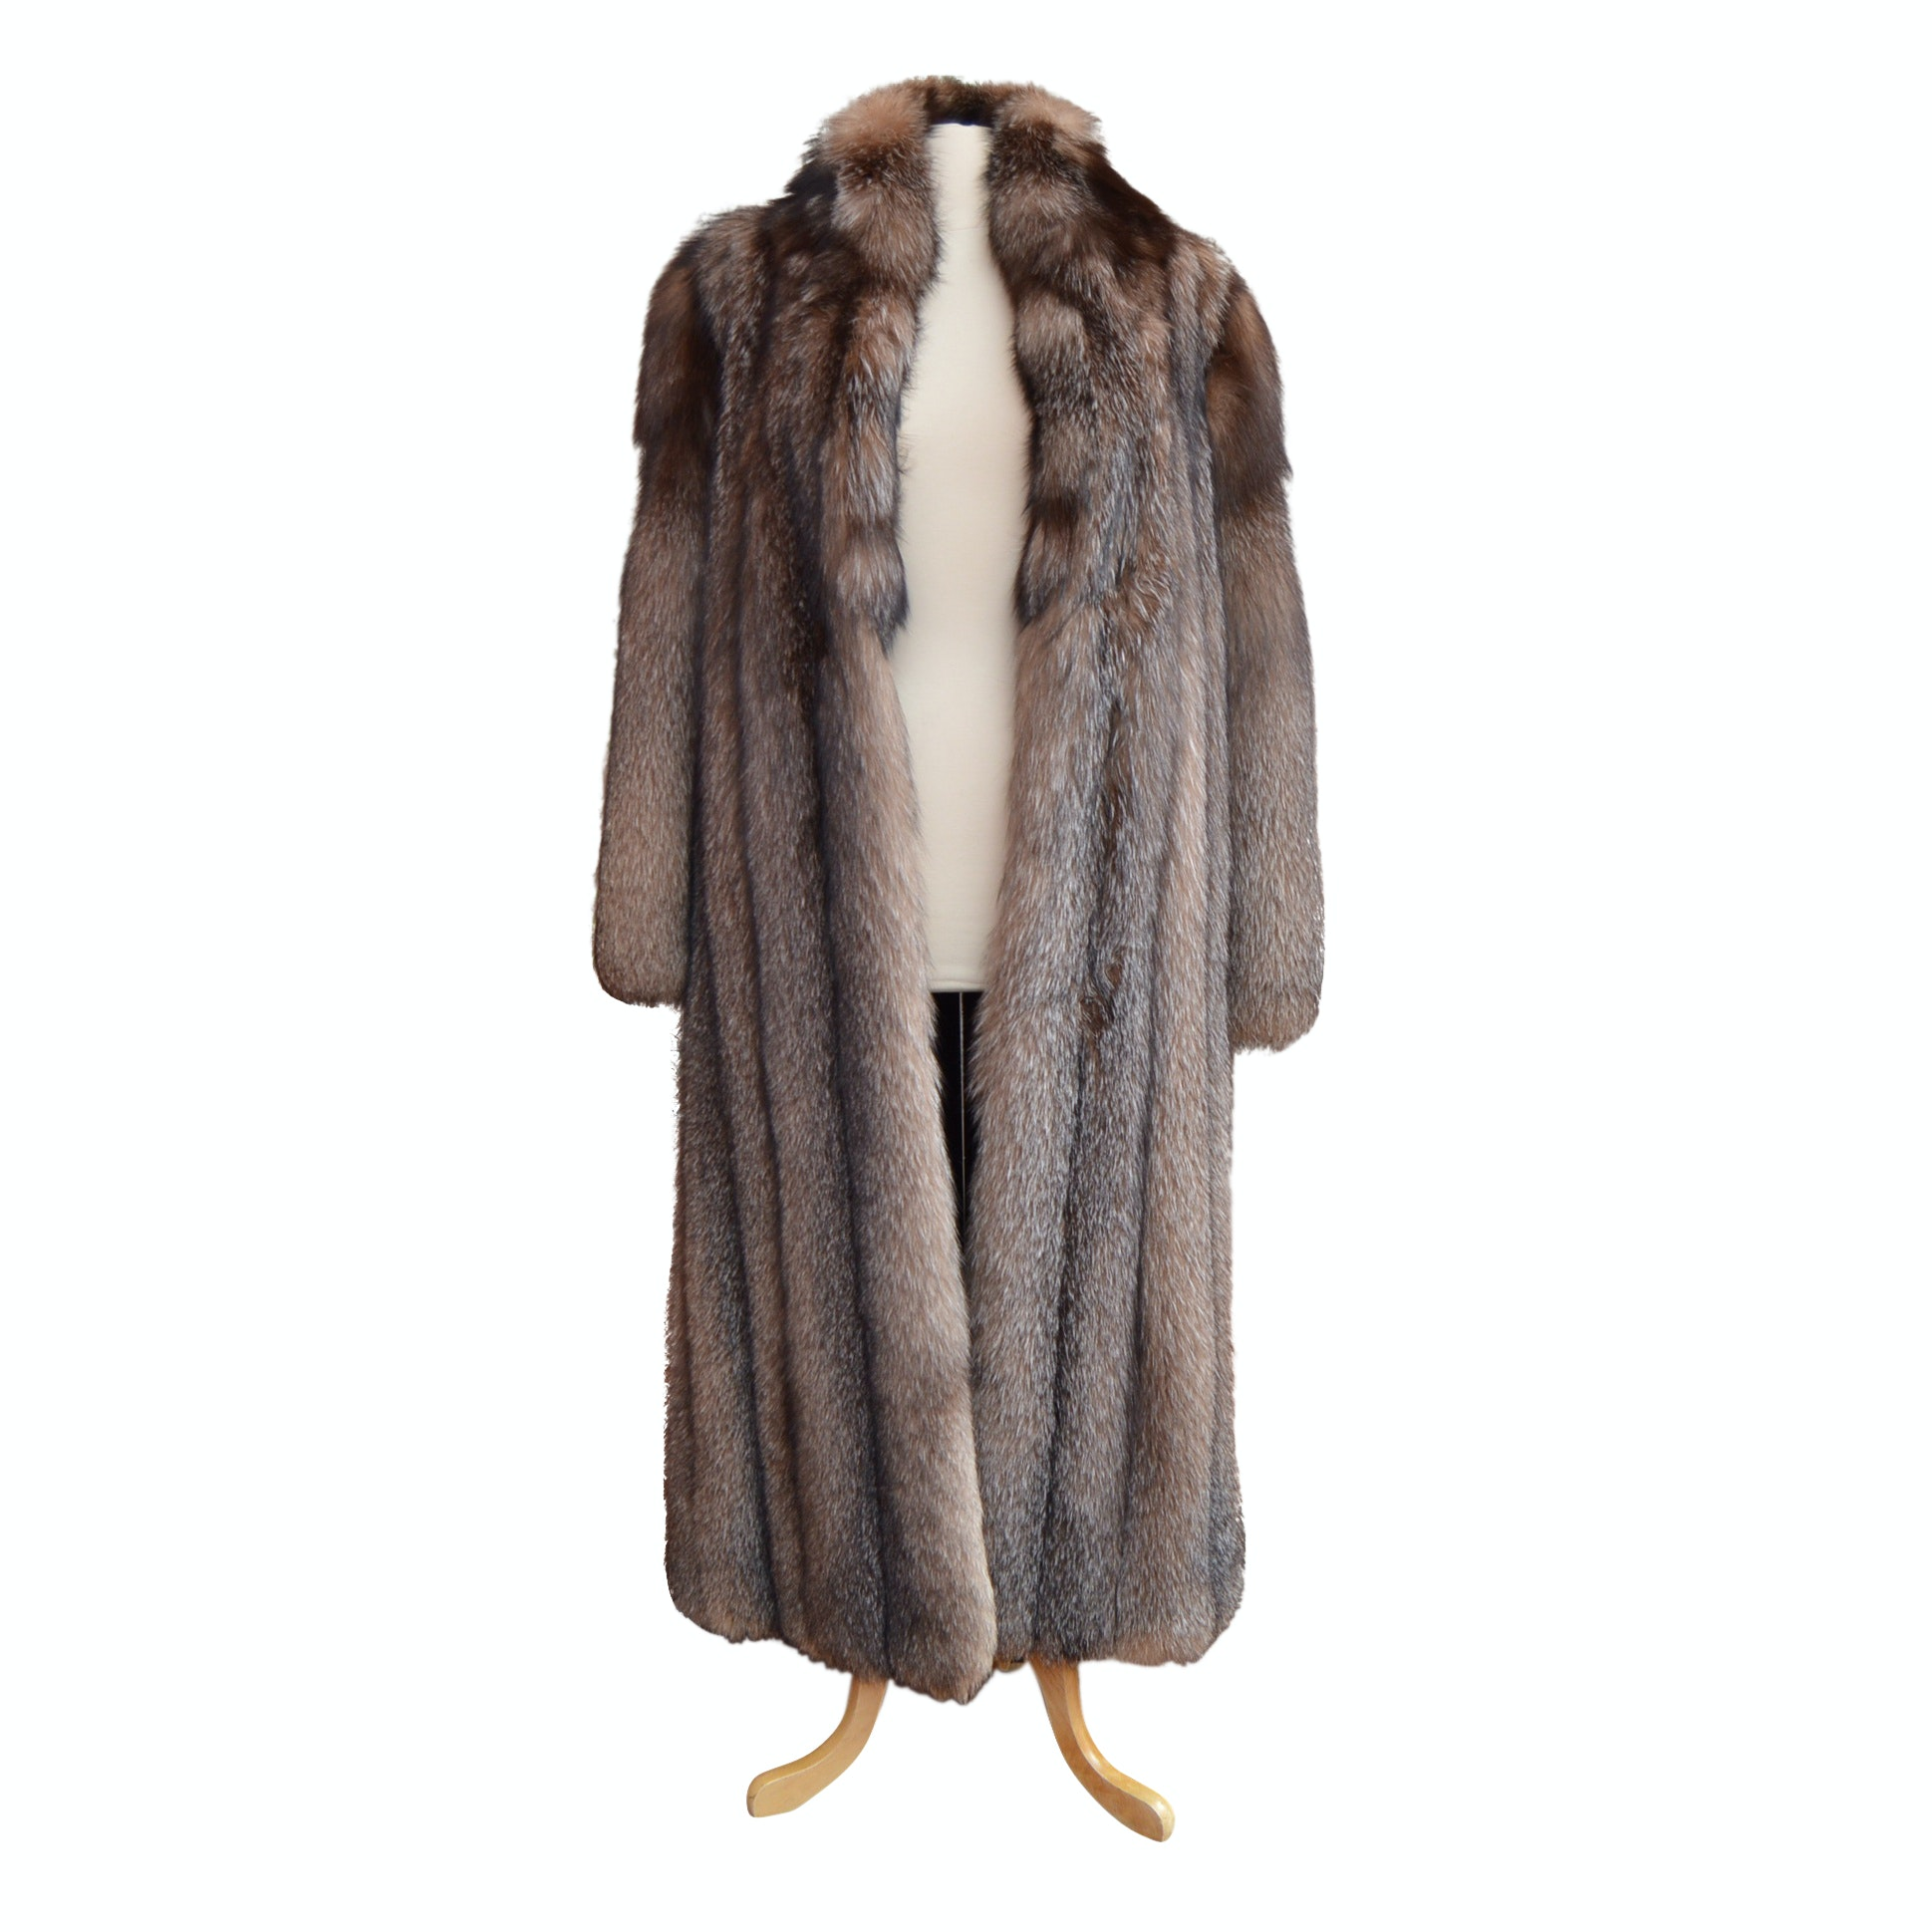 Vintage Crystal Fox Fur Coat from Kotsovos